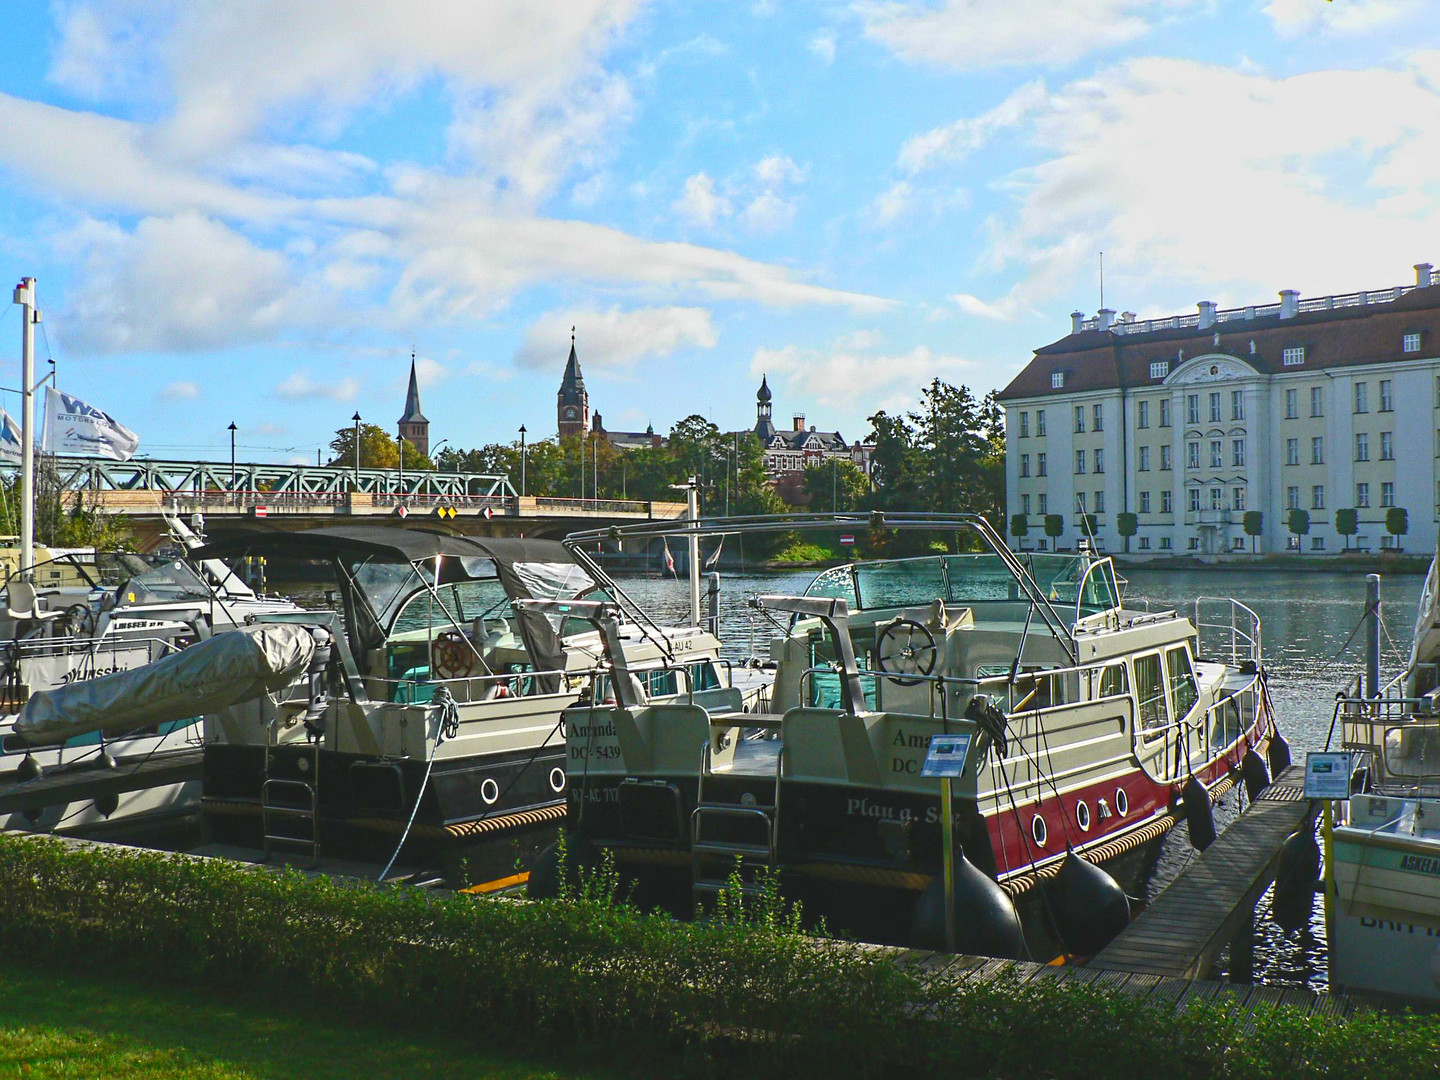 Yachts, River Spree and the Koepenick Castle